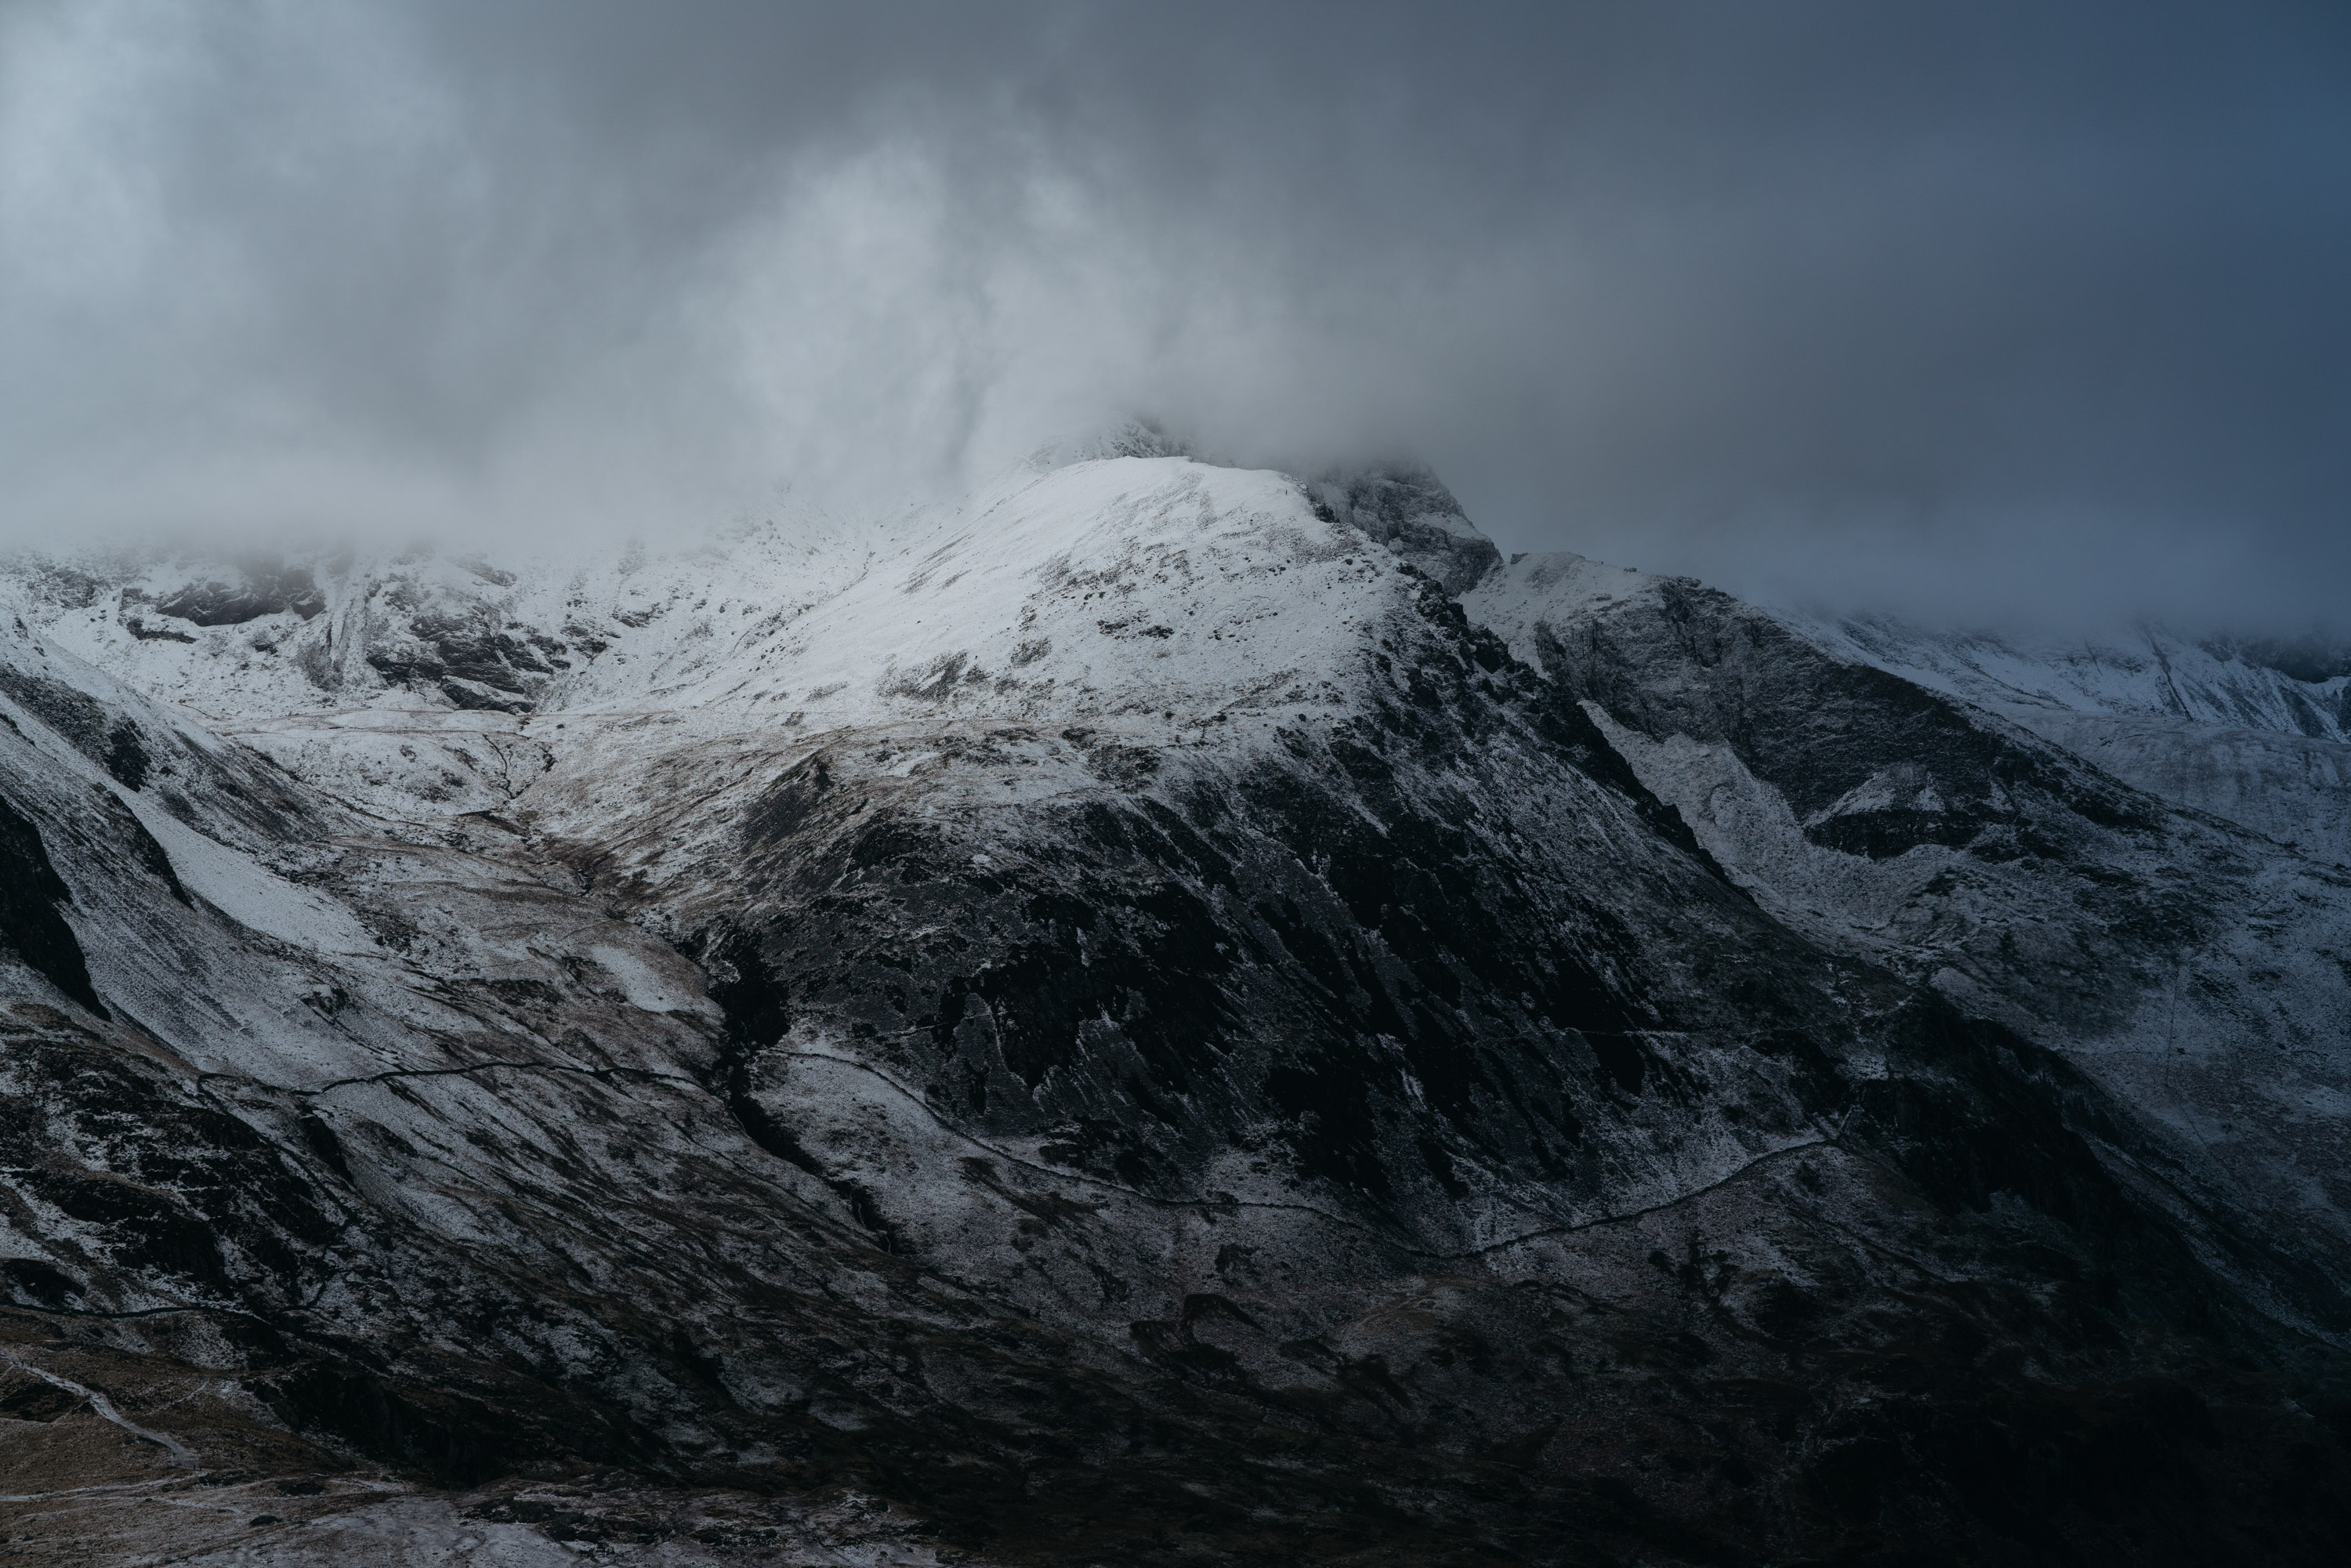 A snow-coned mountain under a cloudy sky